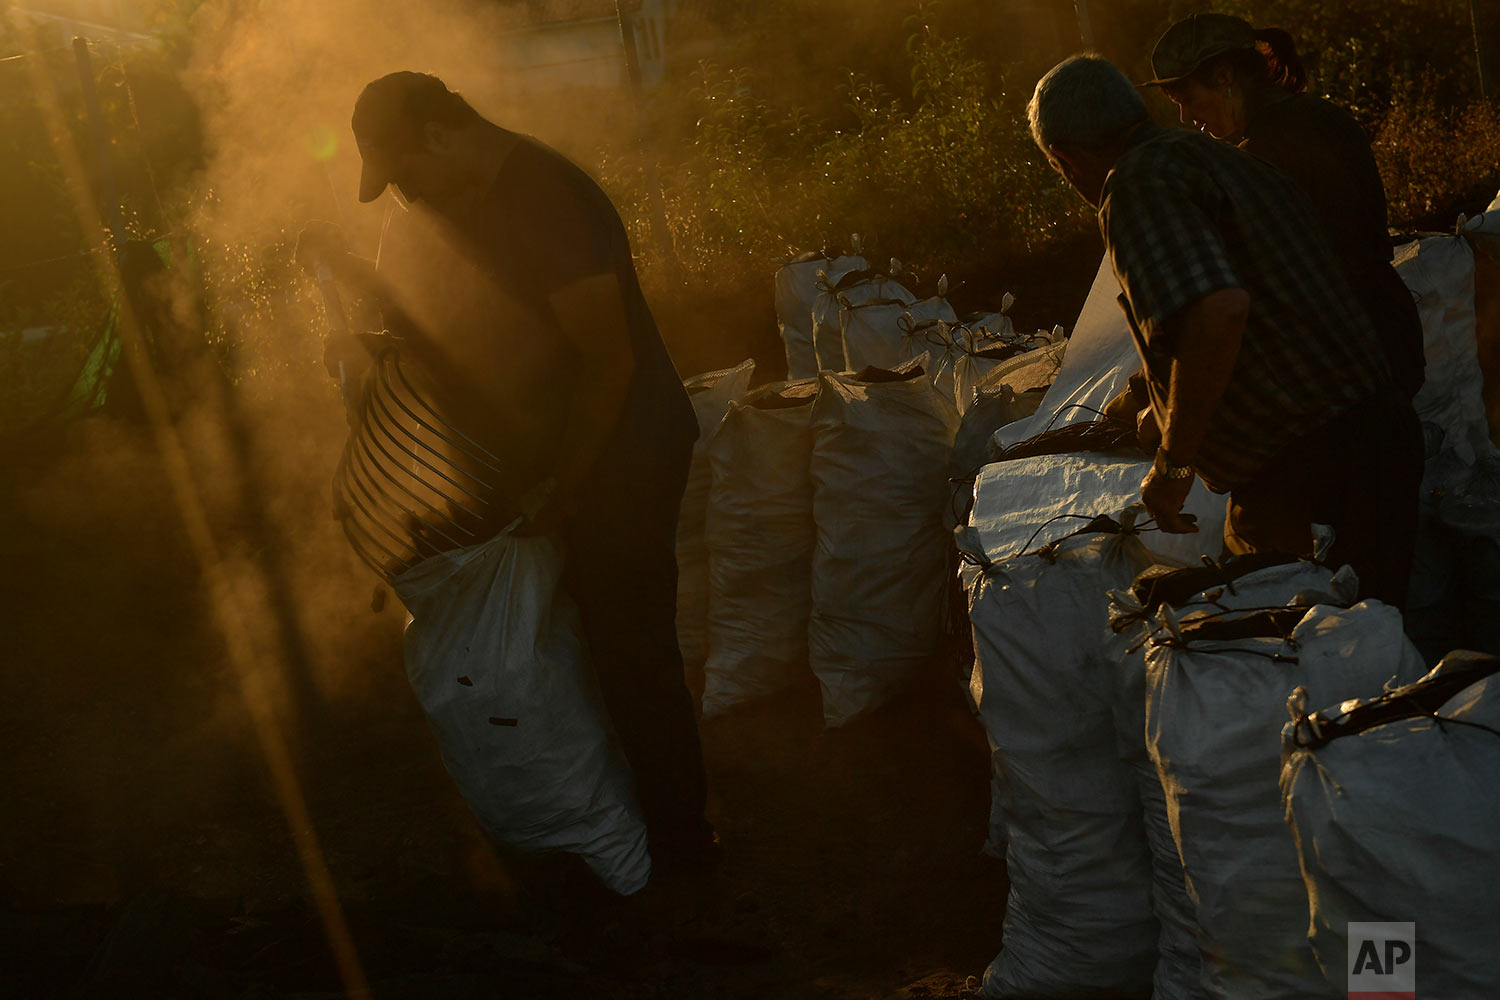 In this Tuesday, Sept.11, 2018 photo, Arkaitz Lander, 22, picks up charcoal putting it in sacks, as part of a process to produce traditional charcoal in Viloria, northern Spain. (AP Photo/Alvaro Barrientos)